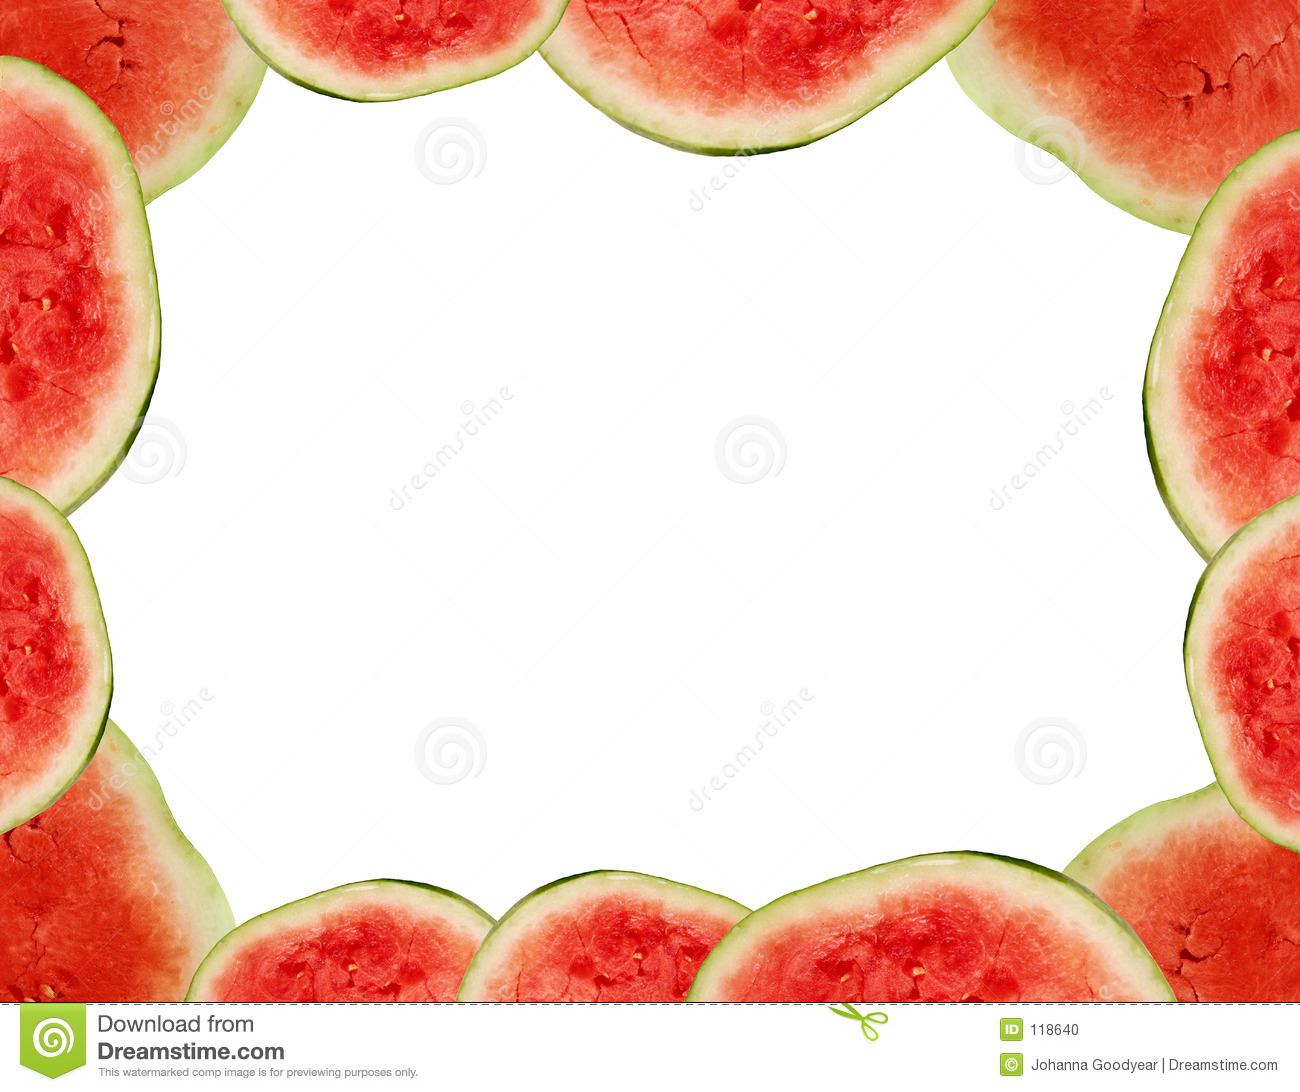 Watermelon frame